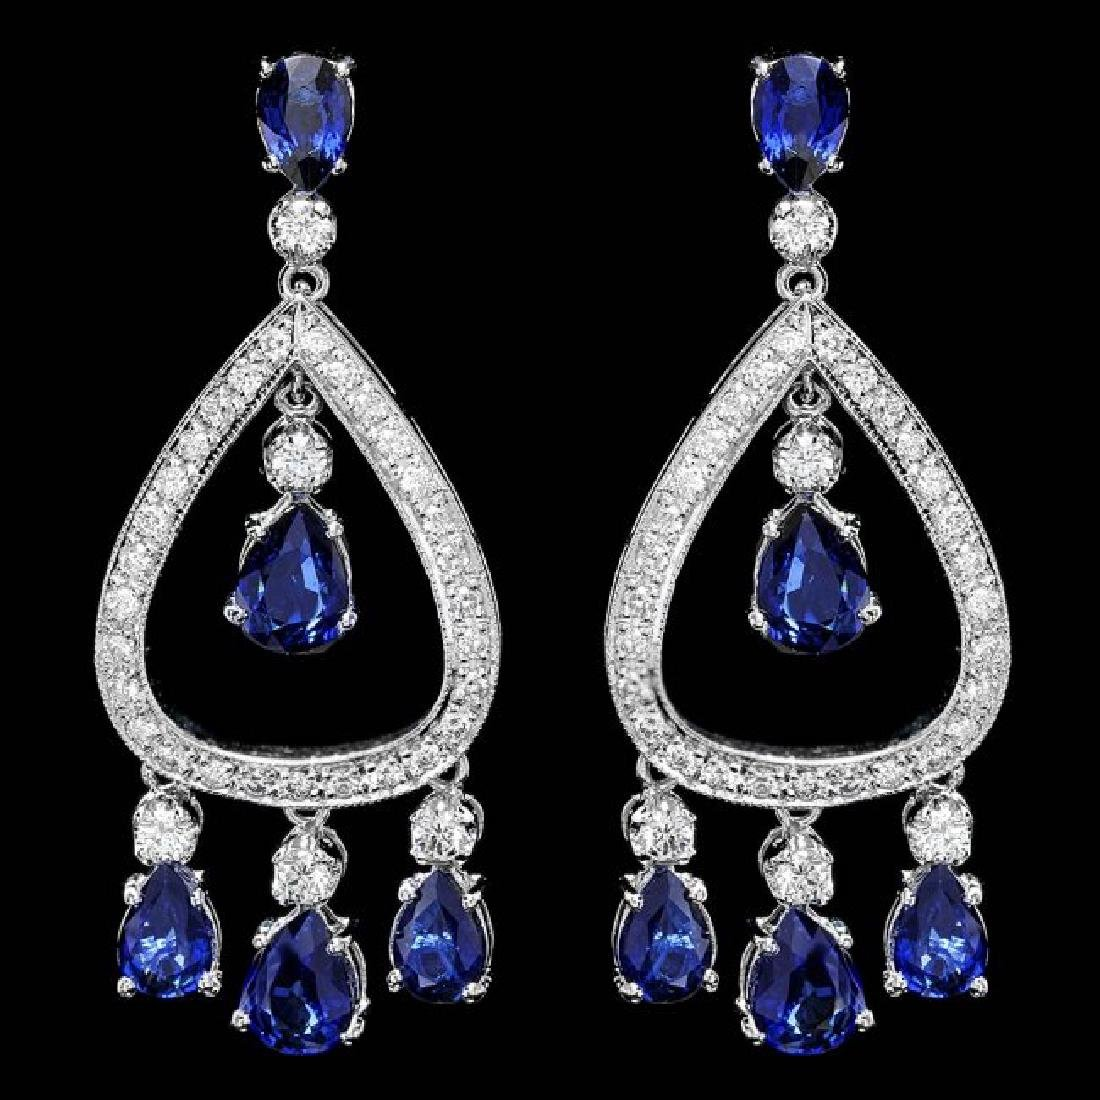 14k Gold 8ct Sapphire 1.10ct Diamond Earrings